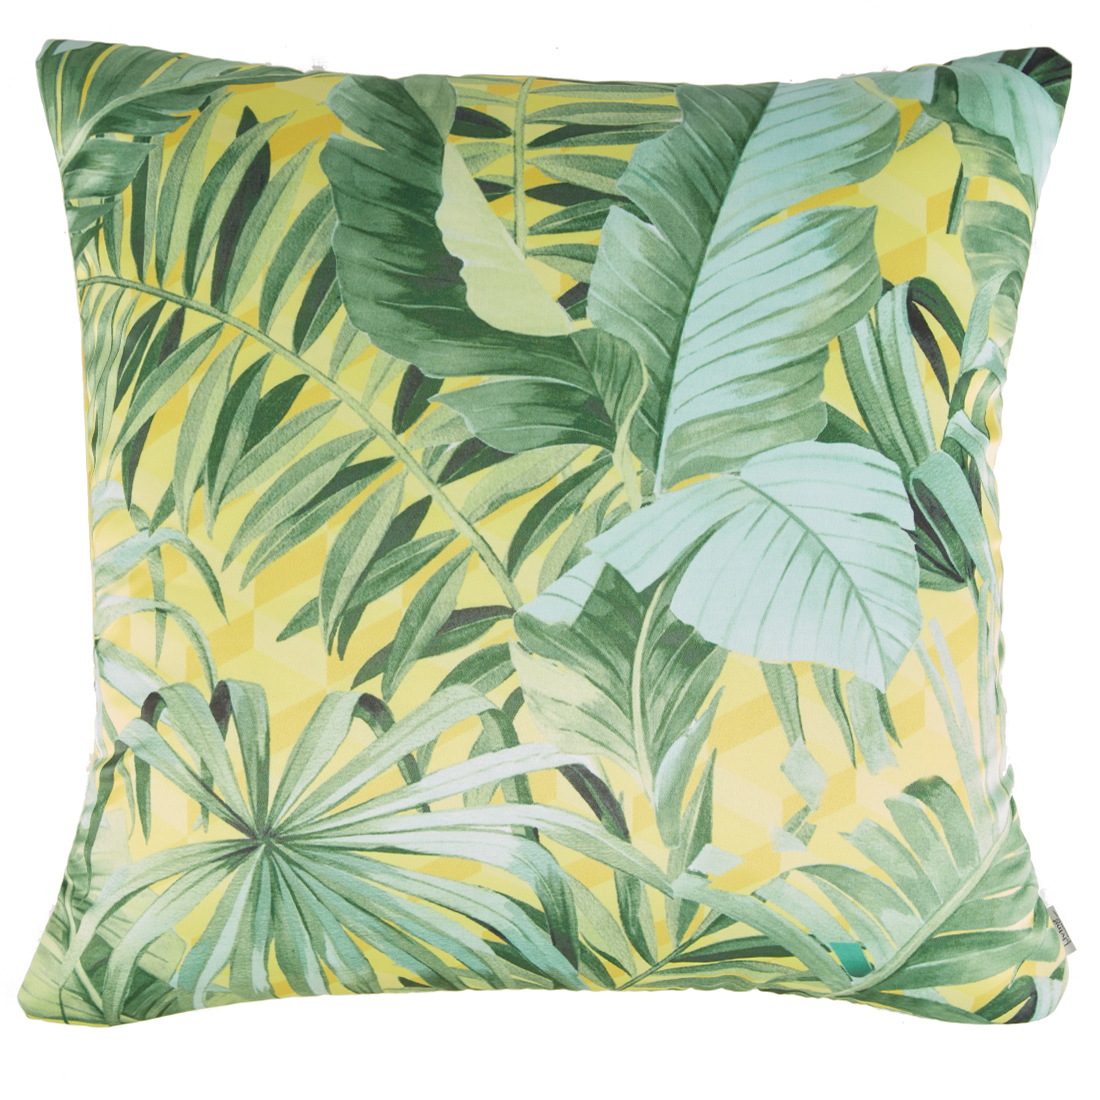 Digital Cushion Cover Palm Cushion Covers in Poly Satin Colour by Living Essence